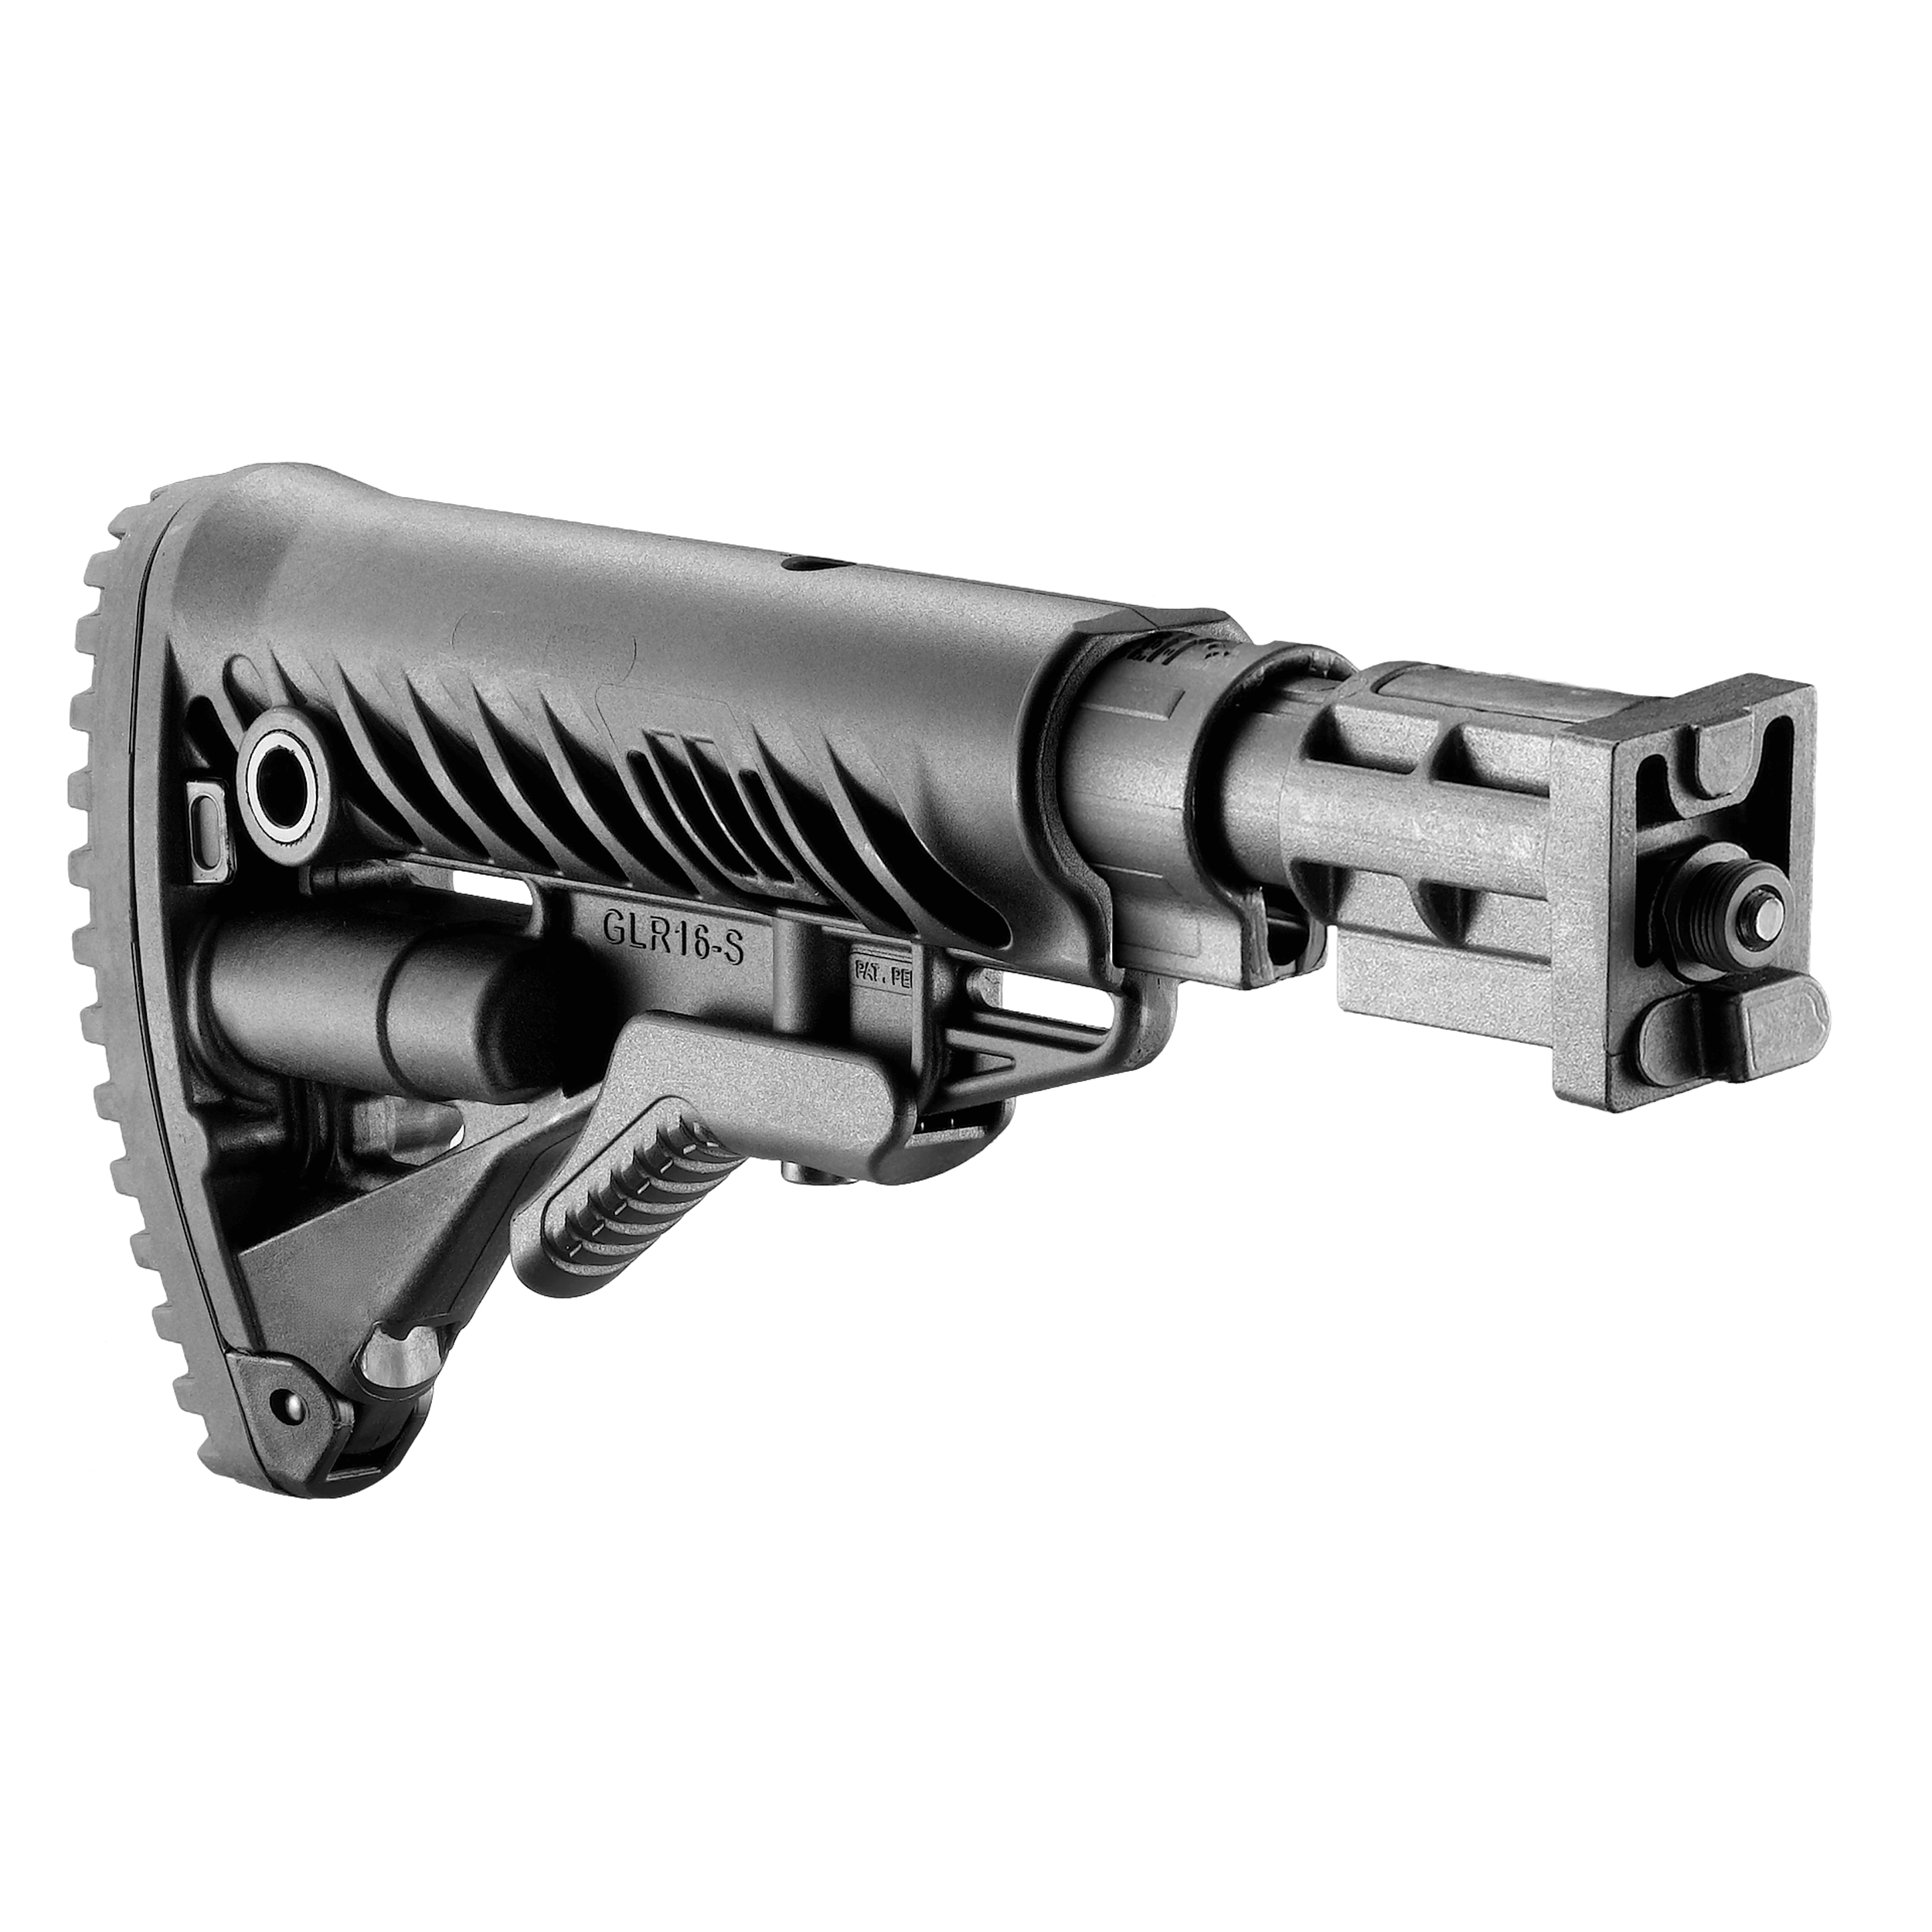 VZ58 recoil reducing system / AR15 Style